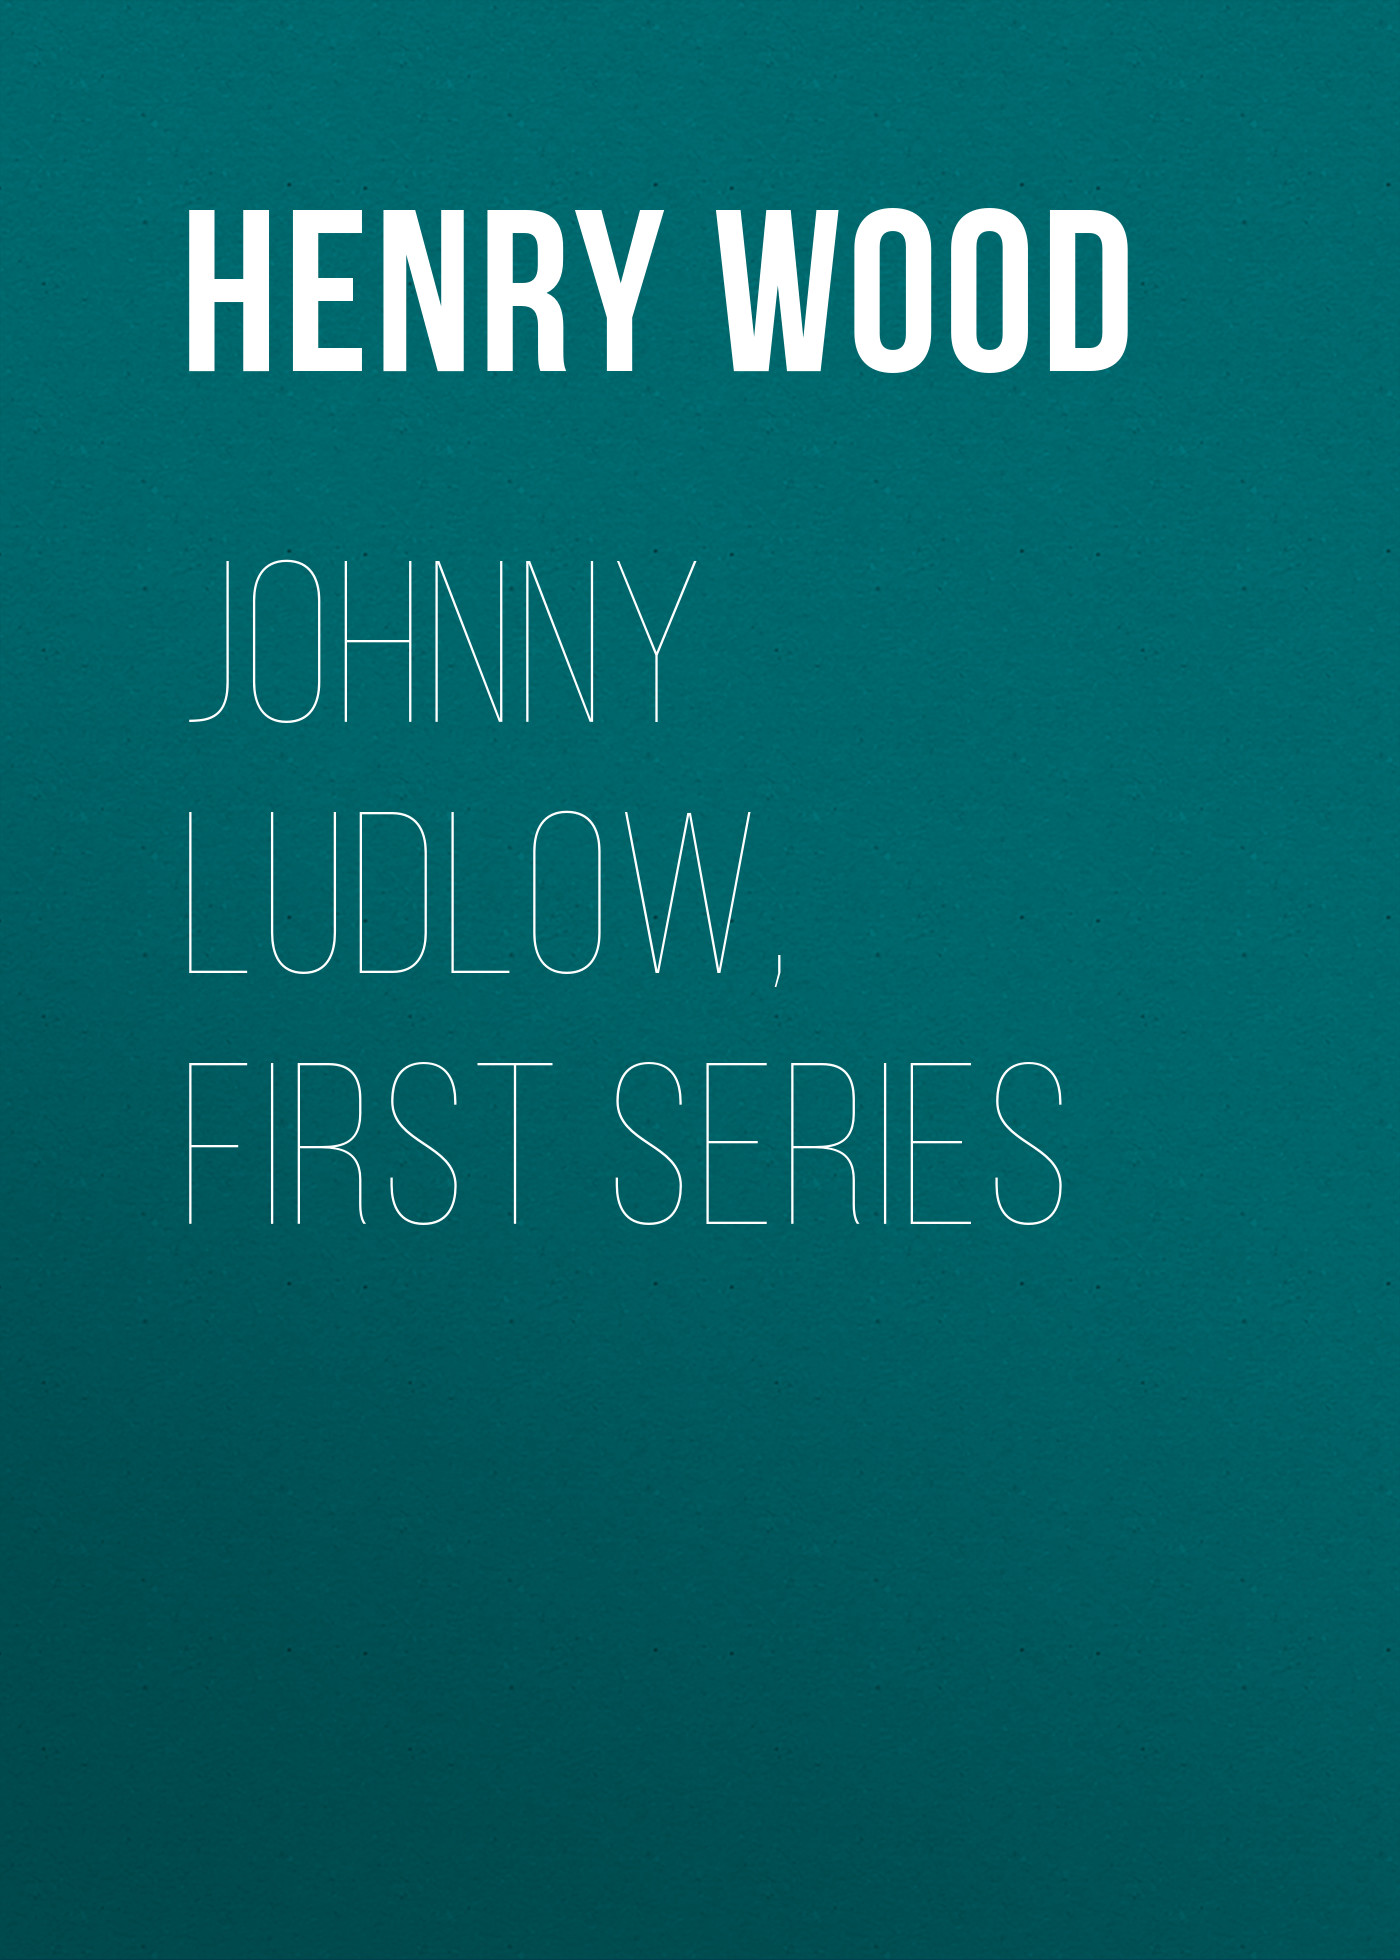 лучшая цена Henry Wood Johnny Ludlow, First Series